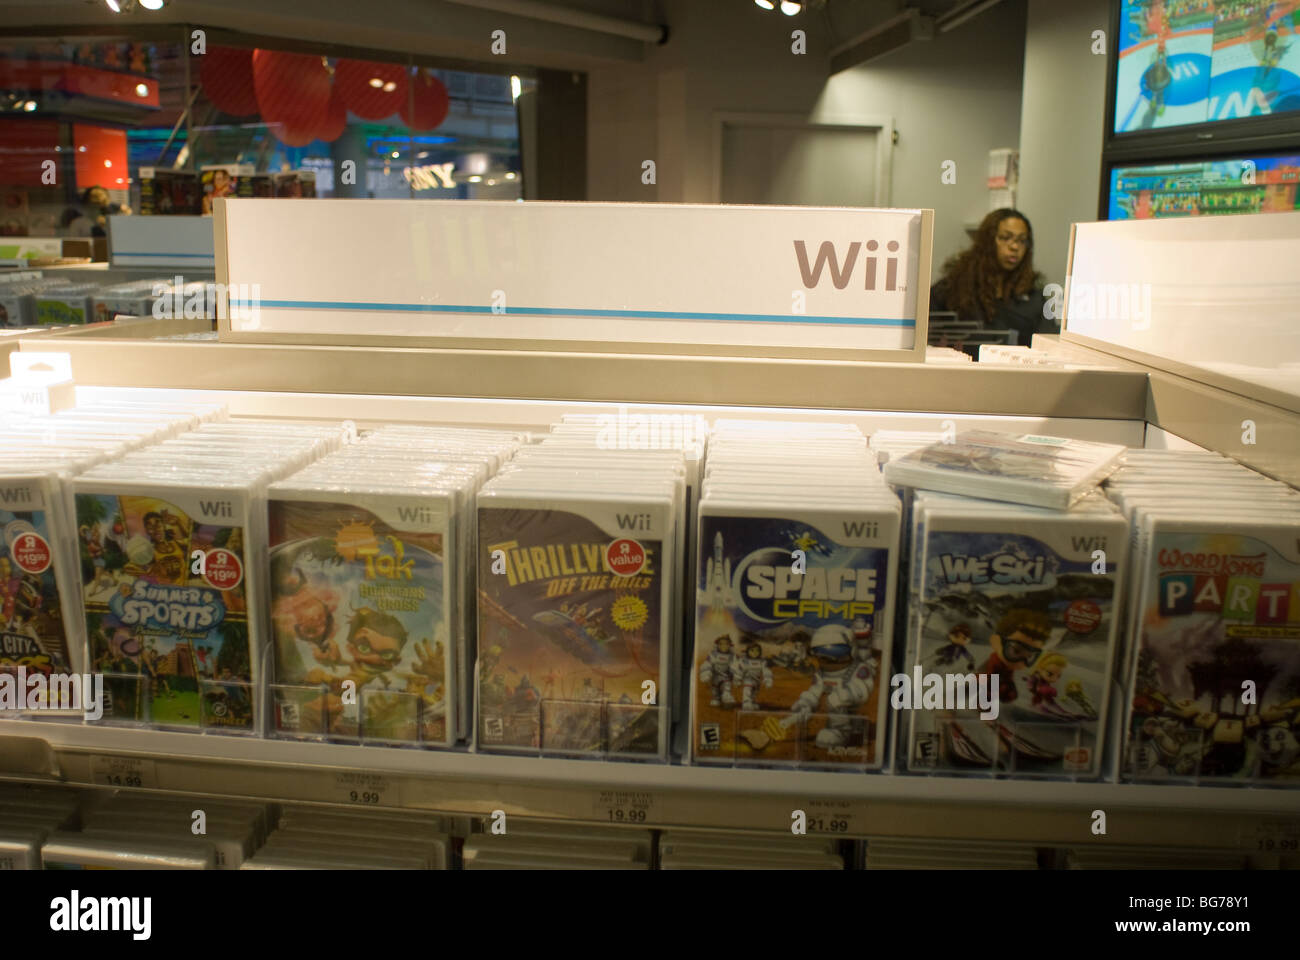 Nintendo Wii Video Games On Sale At Toys R Us In Times Square In New